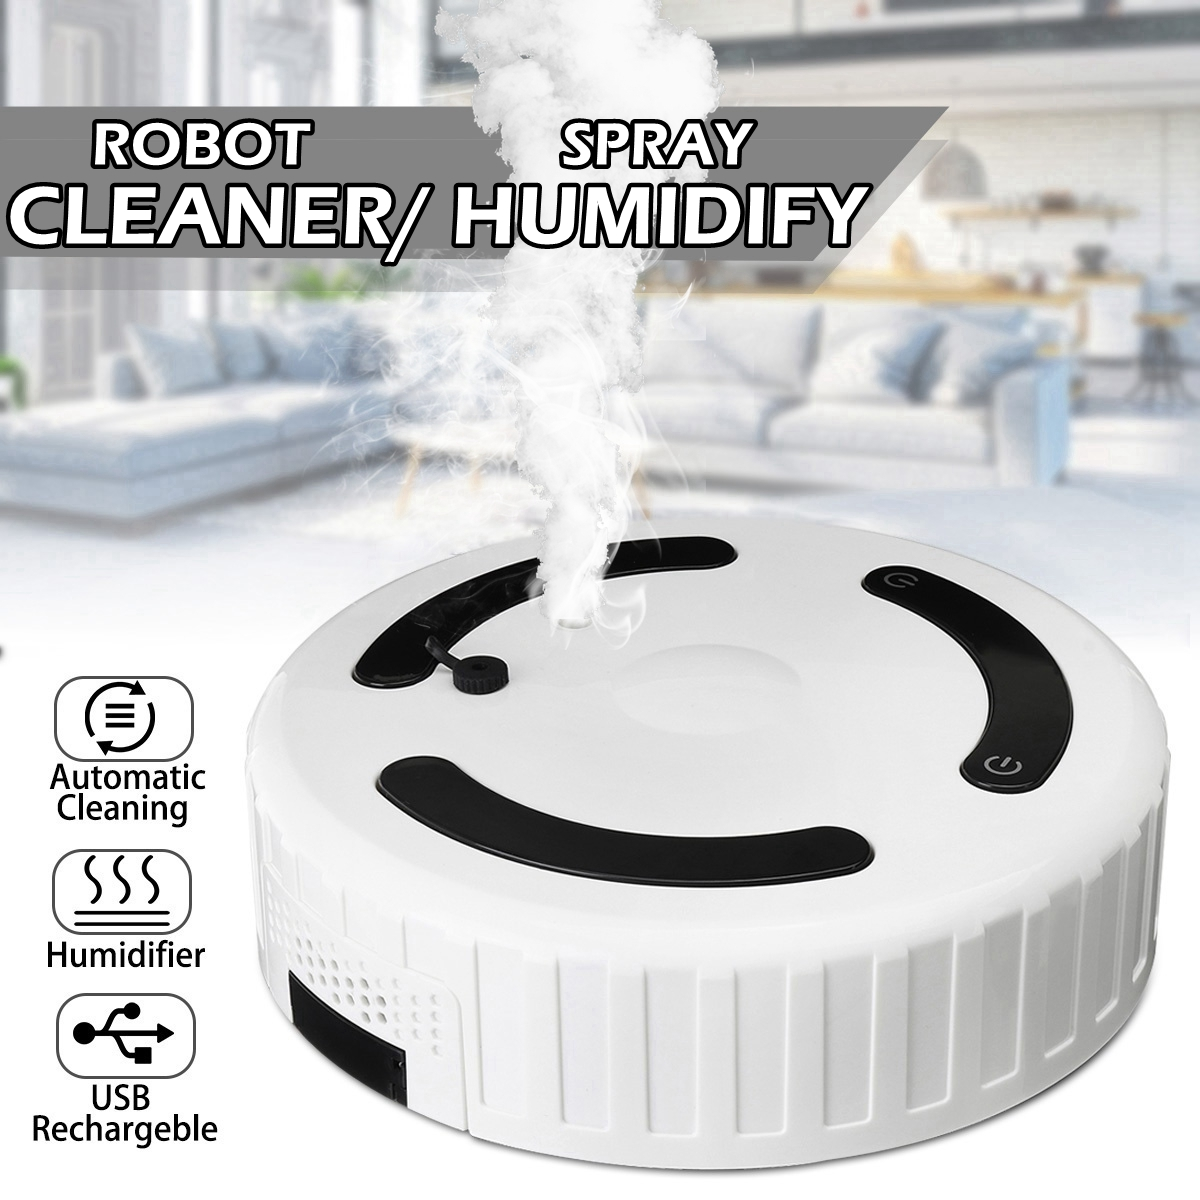 3 In 1 Smart Sweeping Robot Humidifier Automatic Vacuum Cleaner Strong Suction Dry Wet Clean Robot